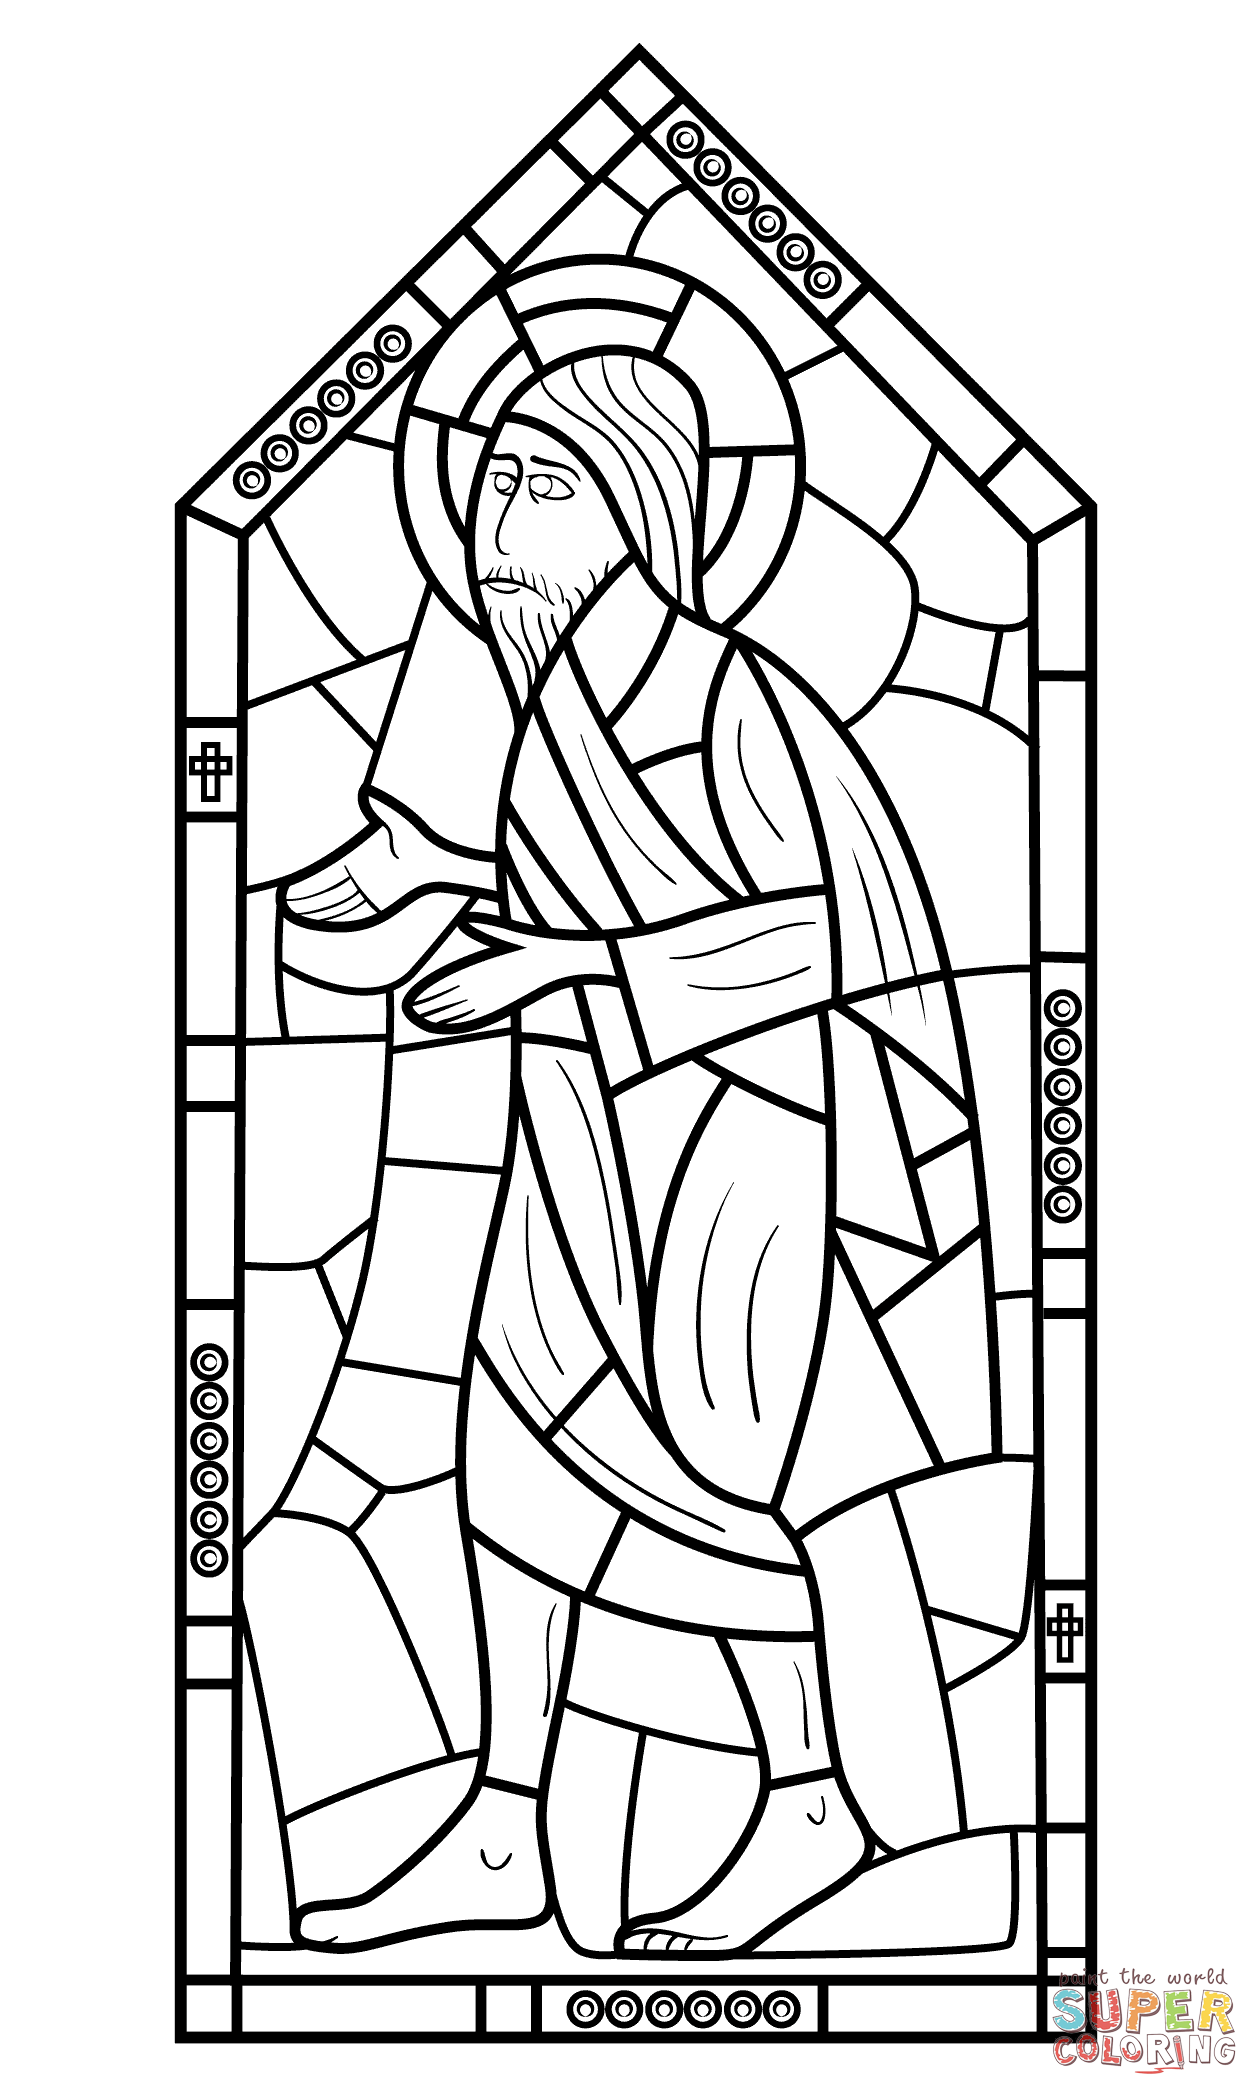 Christmas Coloring Pages Stained Glass With Religious Page Free Printable Best Of